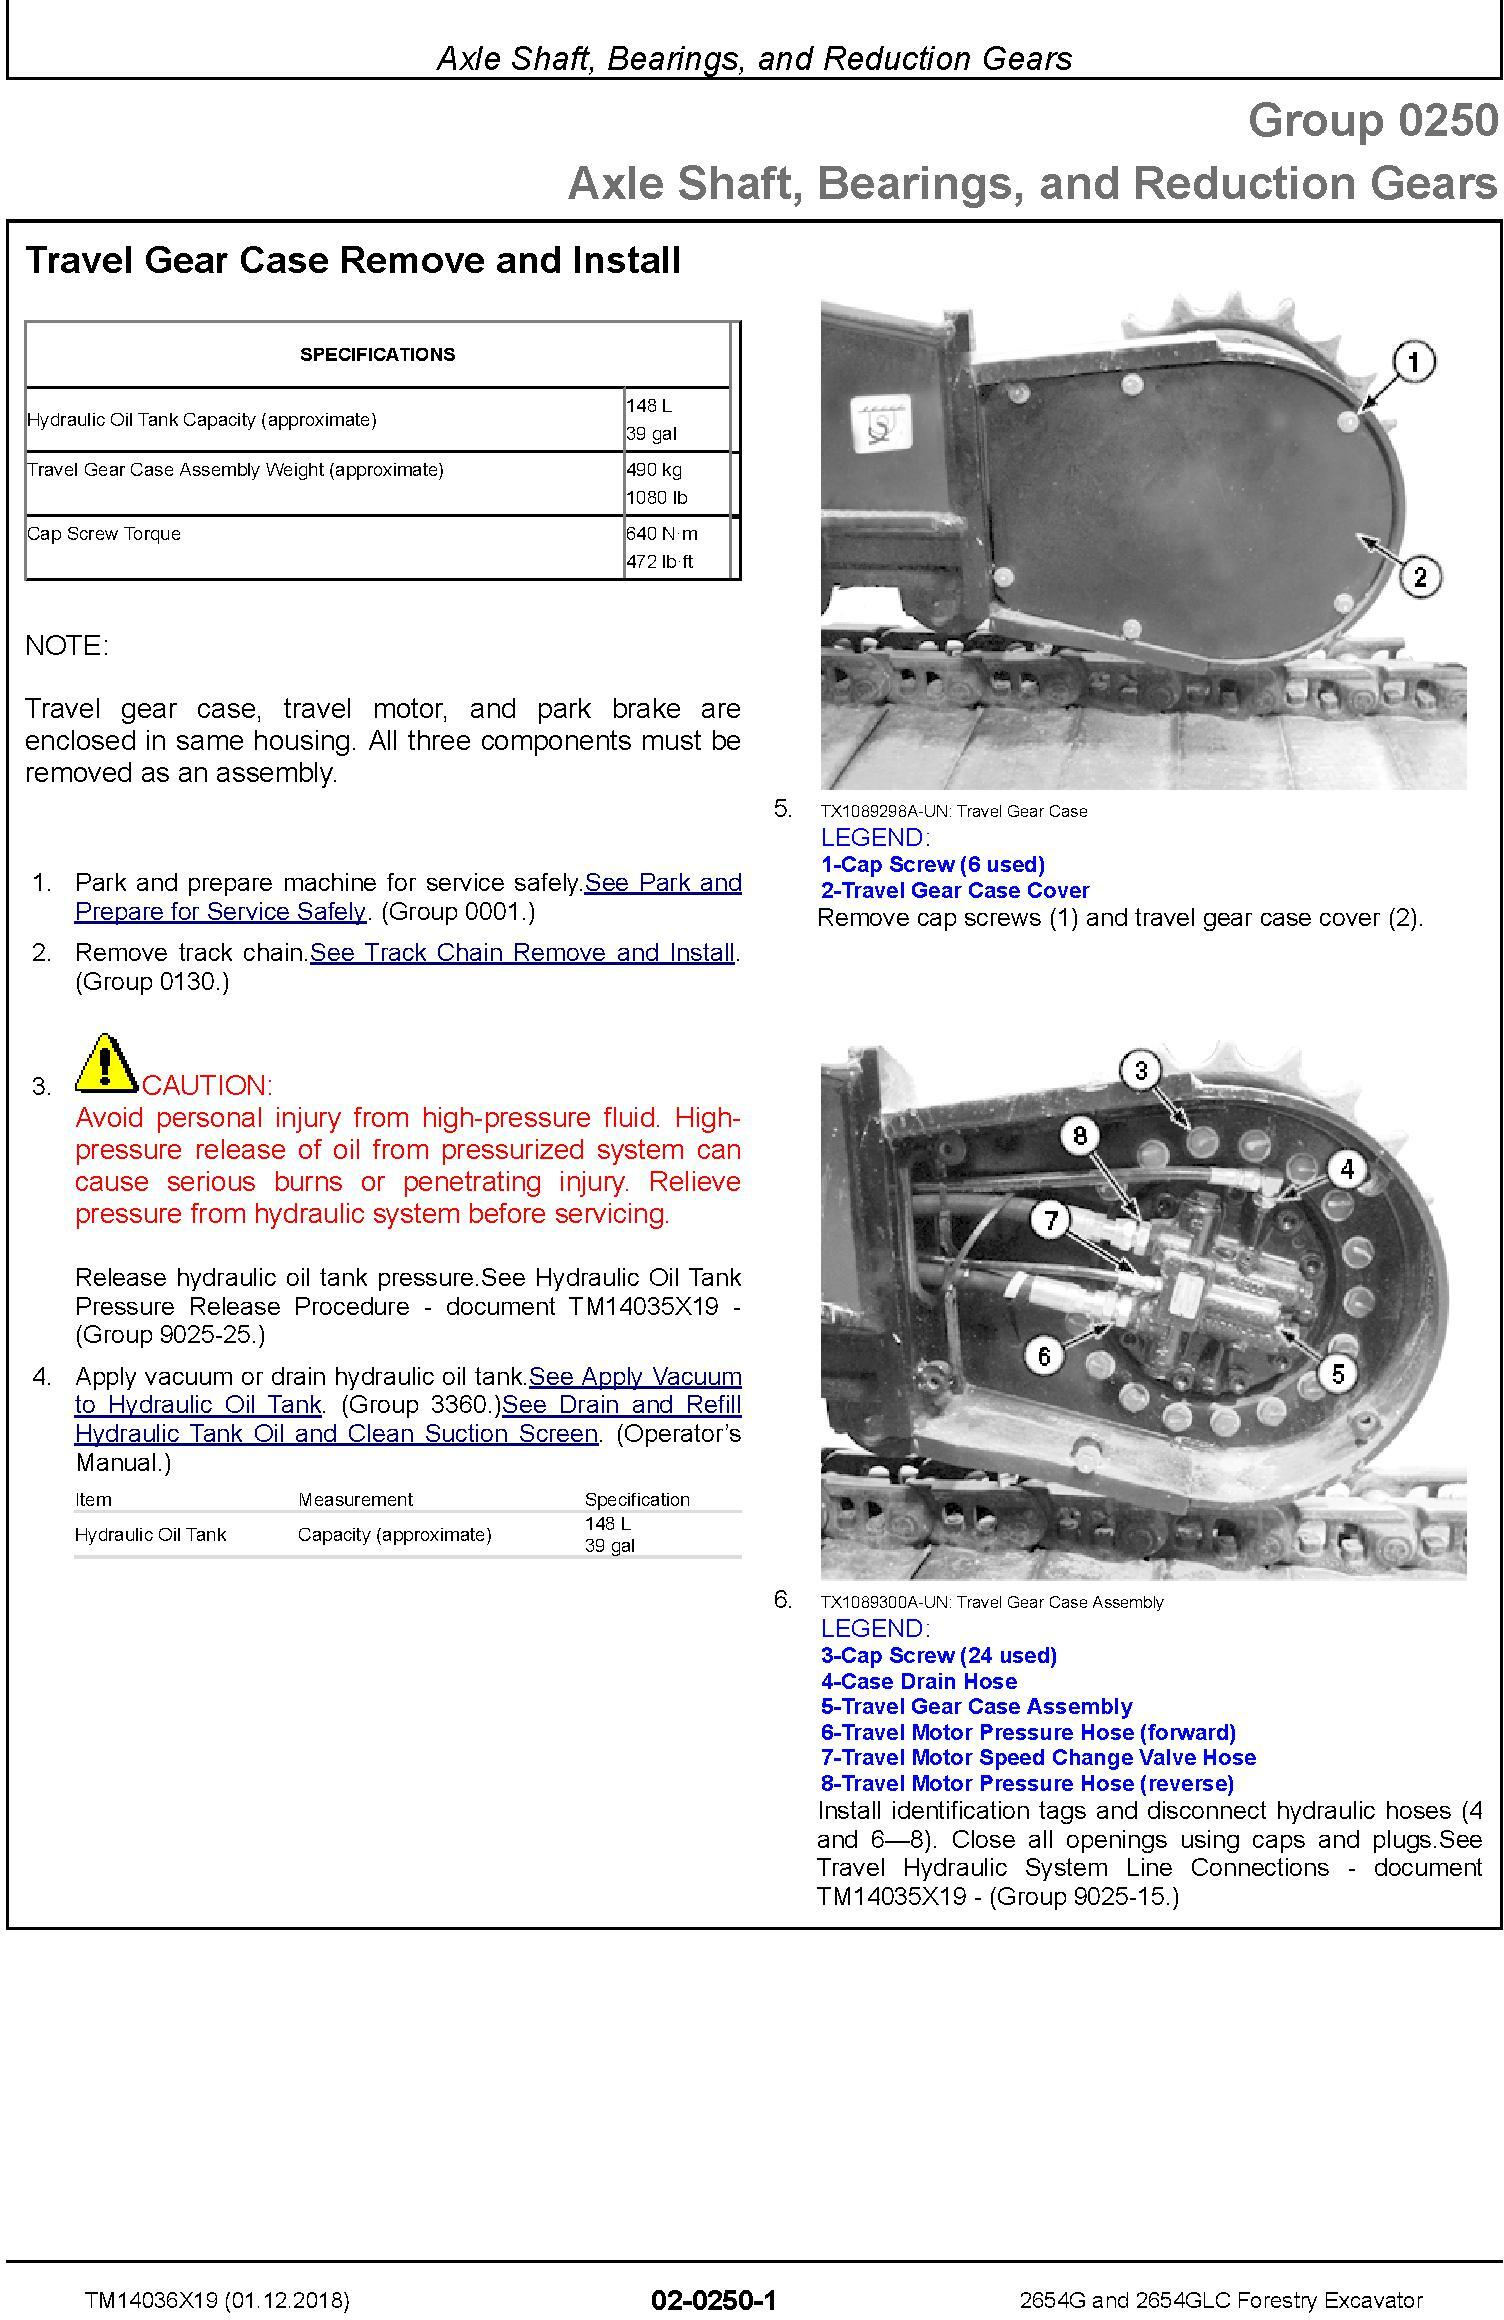 John Deere 2654G,2654GLC (SN.C260001-,D260001) Forestry Excavator Repair Service Manual (TM14036X19) - 2